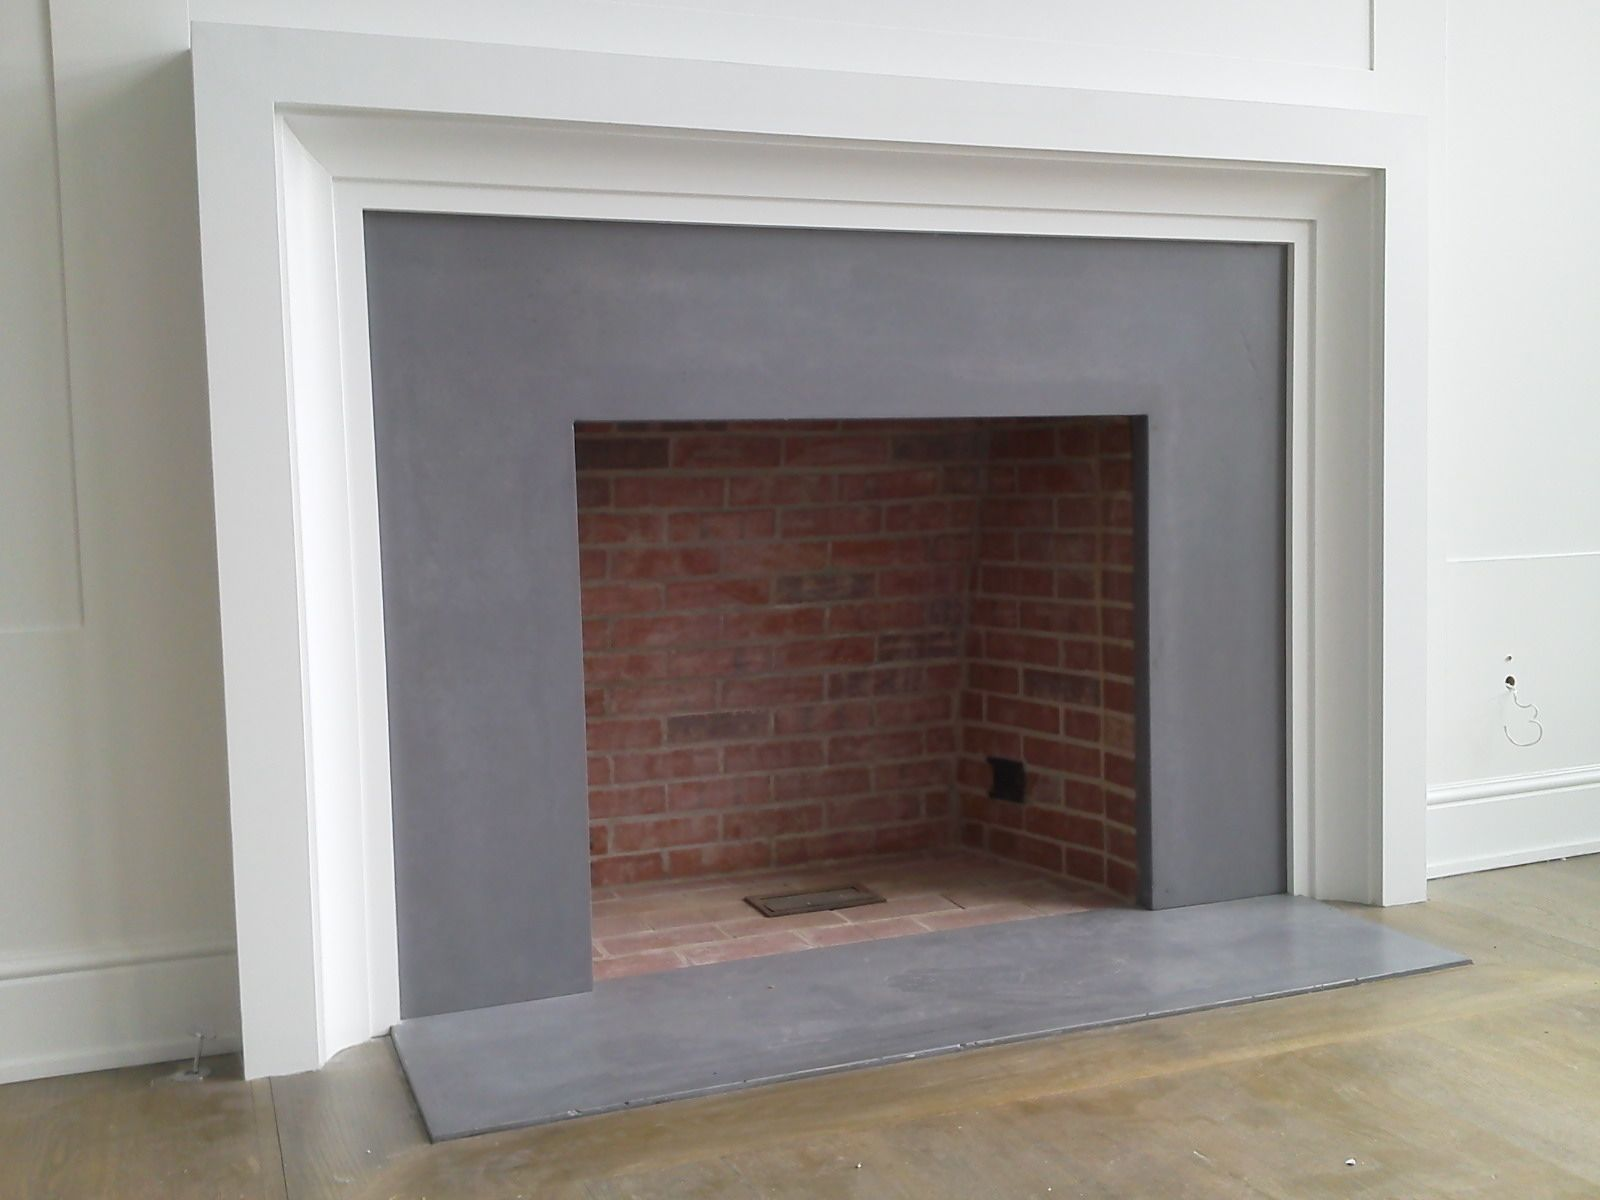 Fireplace surrounds and Tiled fireplace